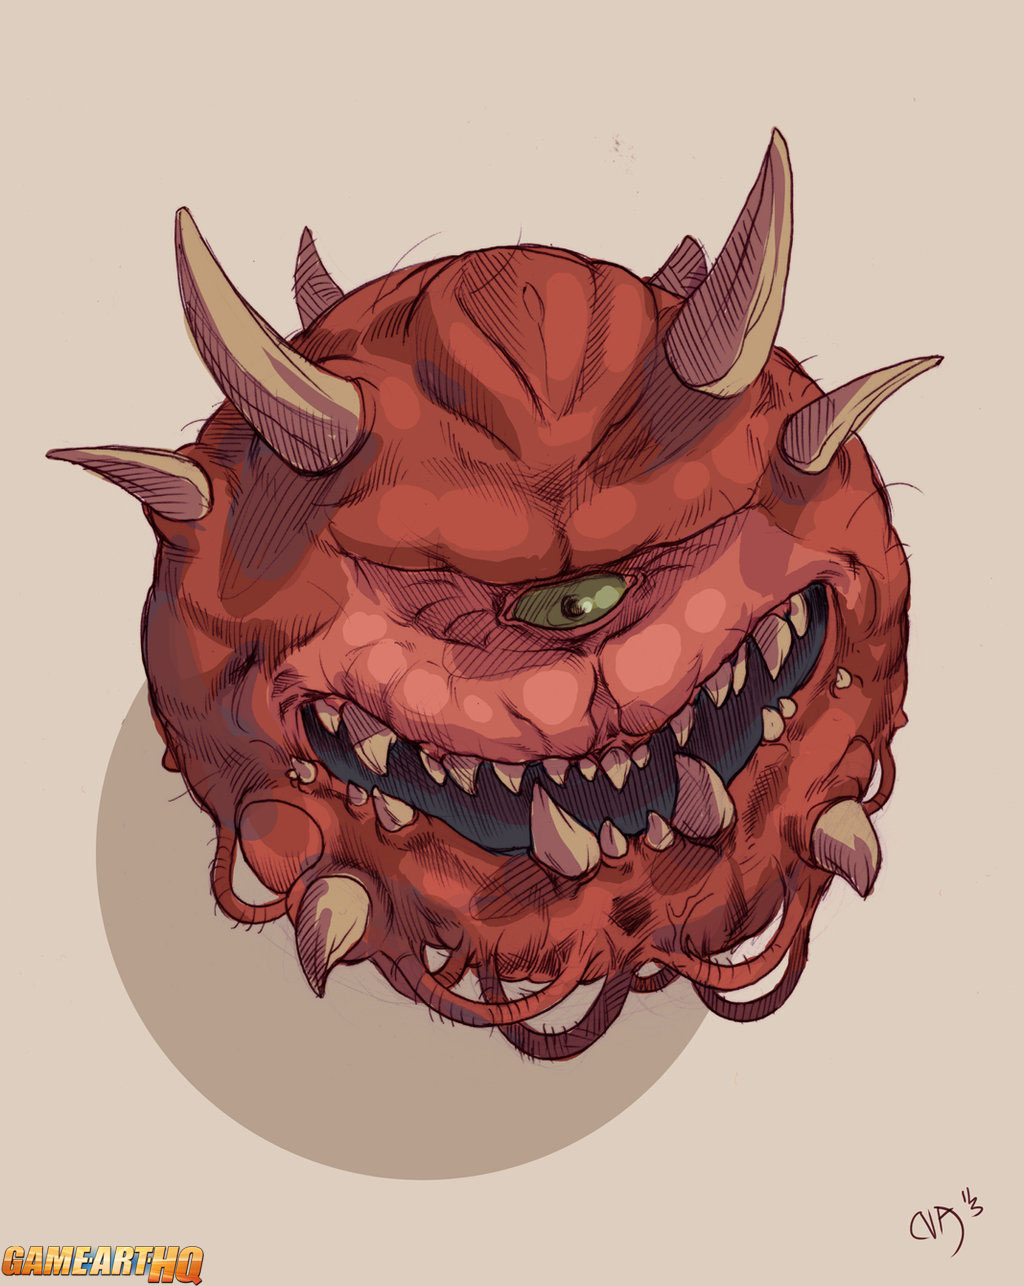 the cacodemon enemy from